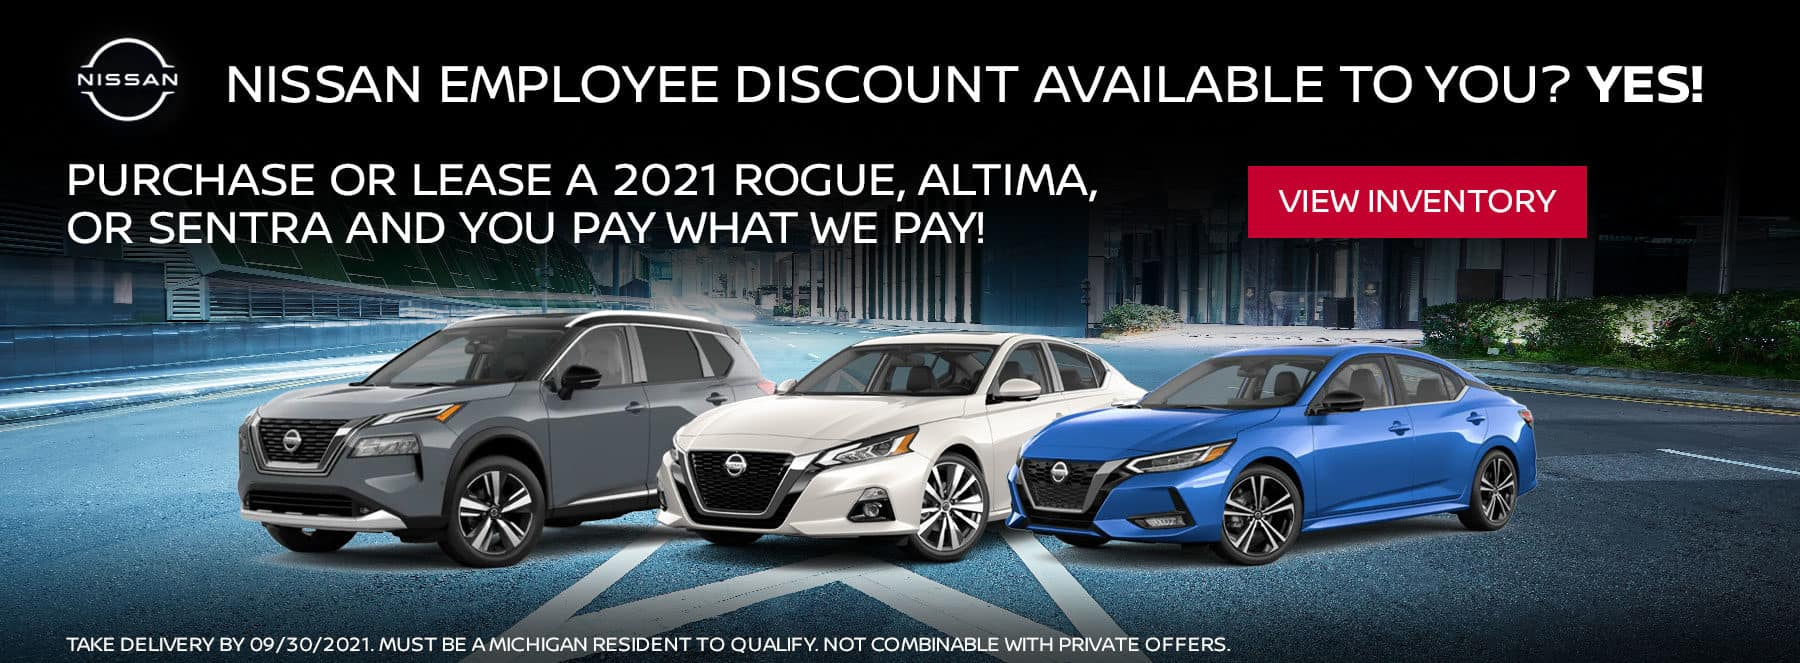 Purchase or lease a 2021 Rogue, Altima, or Sentra and you pay what we pay! Take delivery by 09/30/2021.